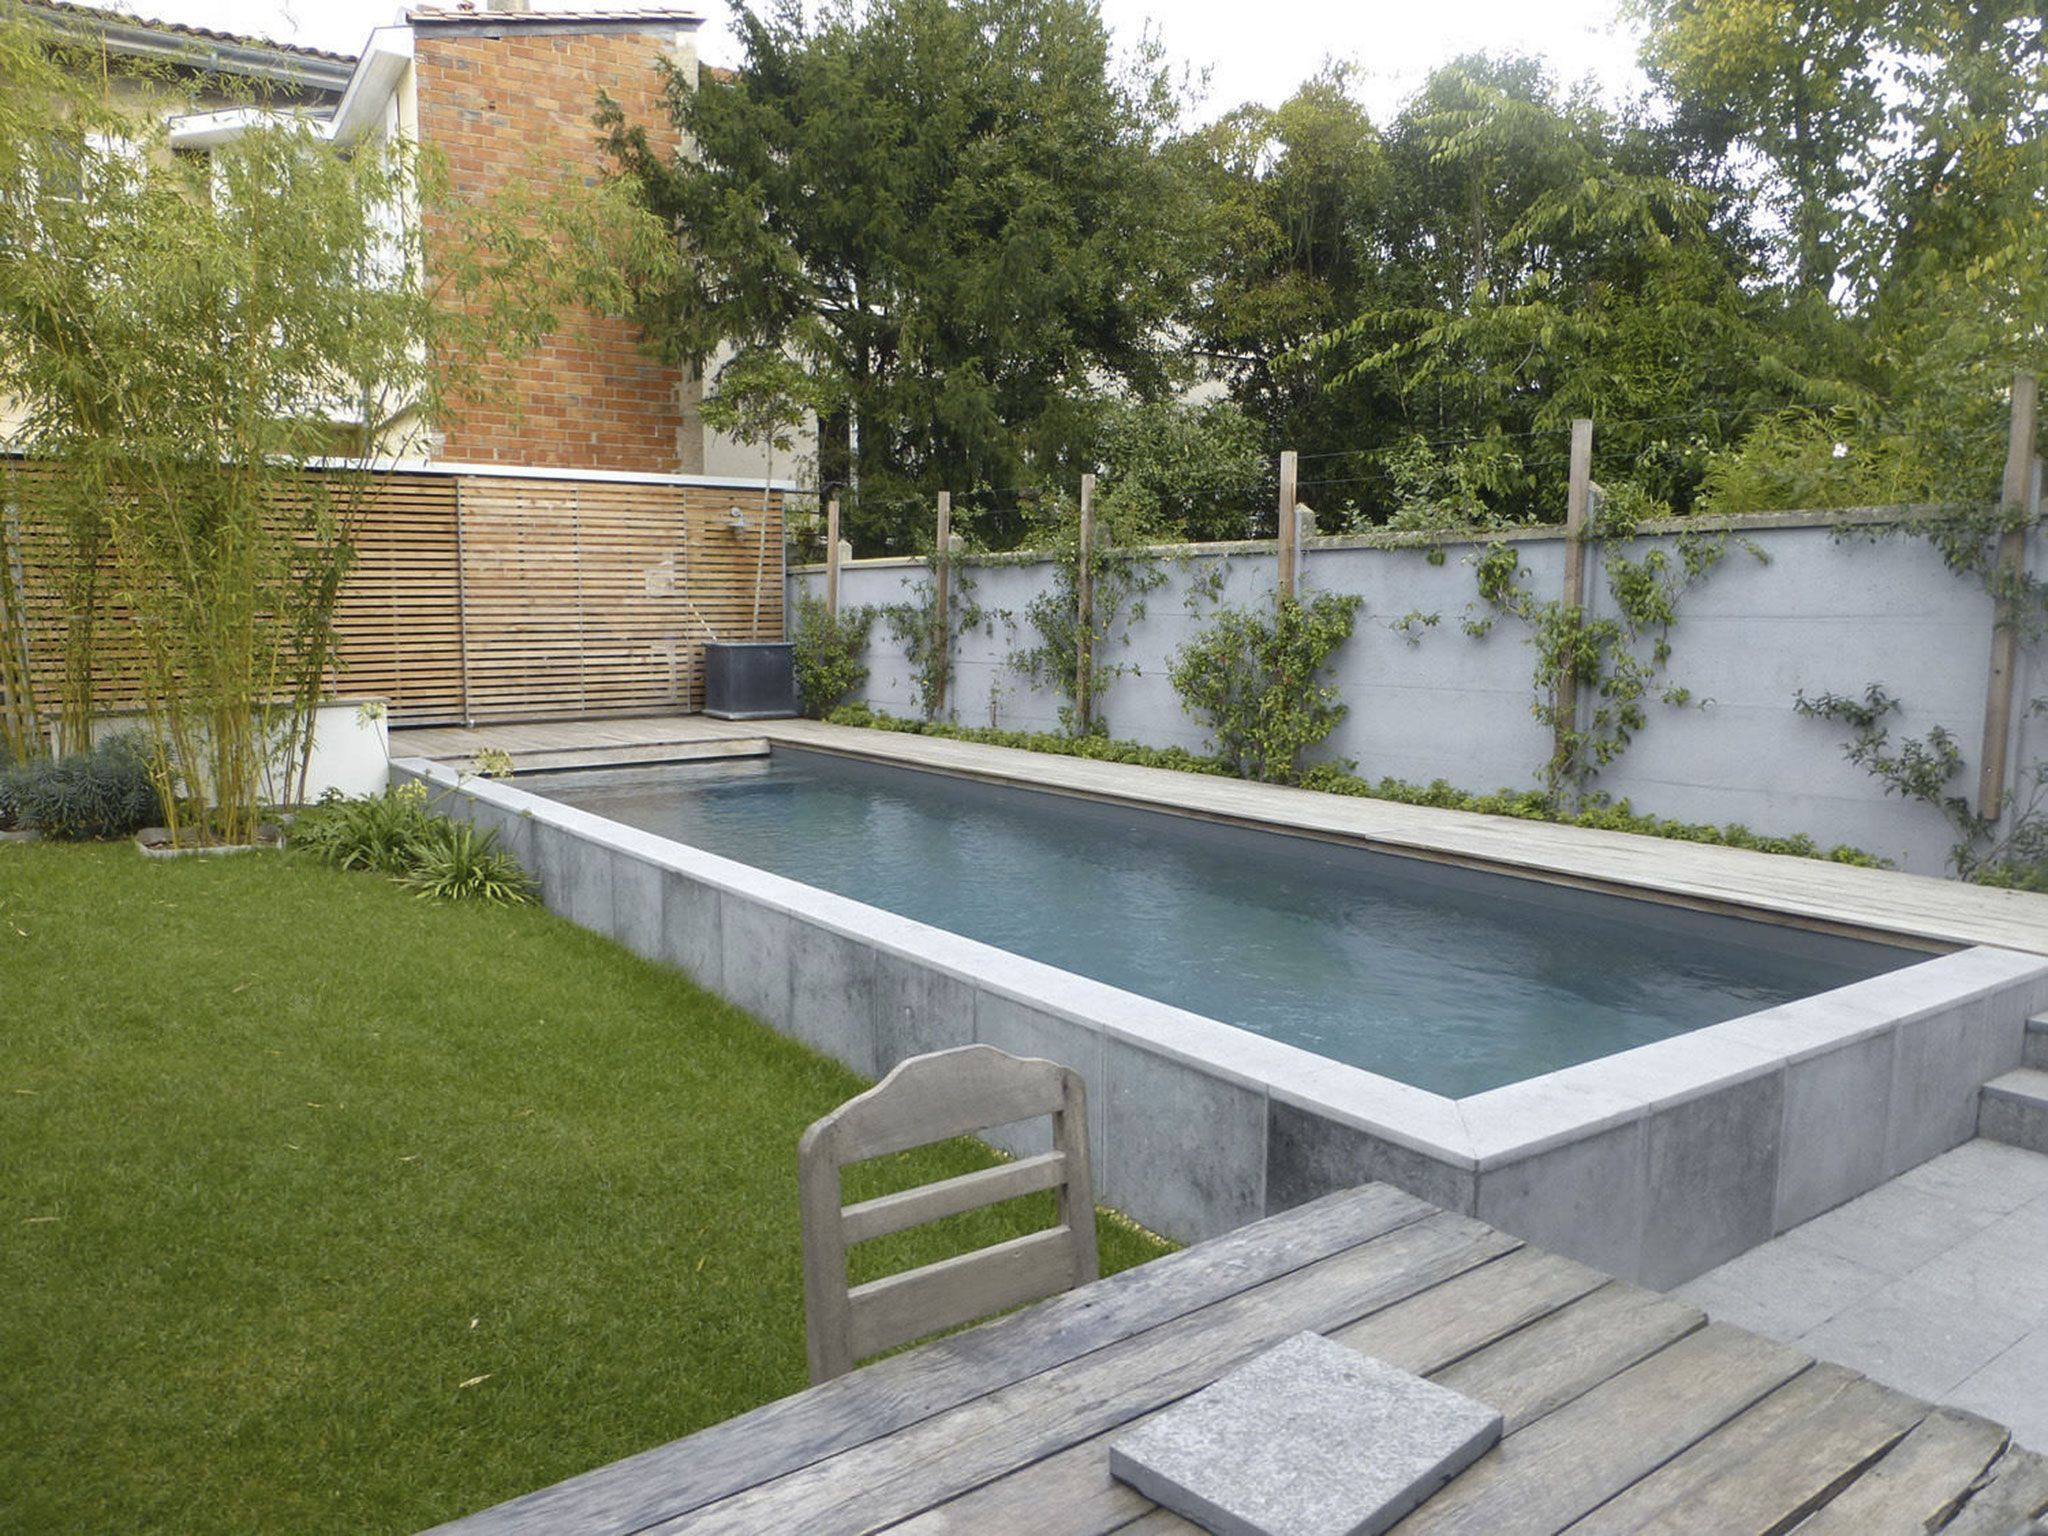 Piscine semi enterr e en b ton pool margelles for Piscine semi enterree 6x4